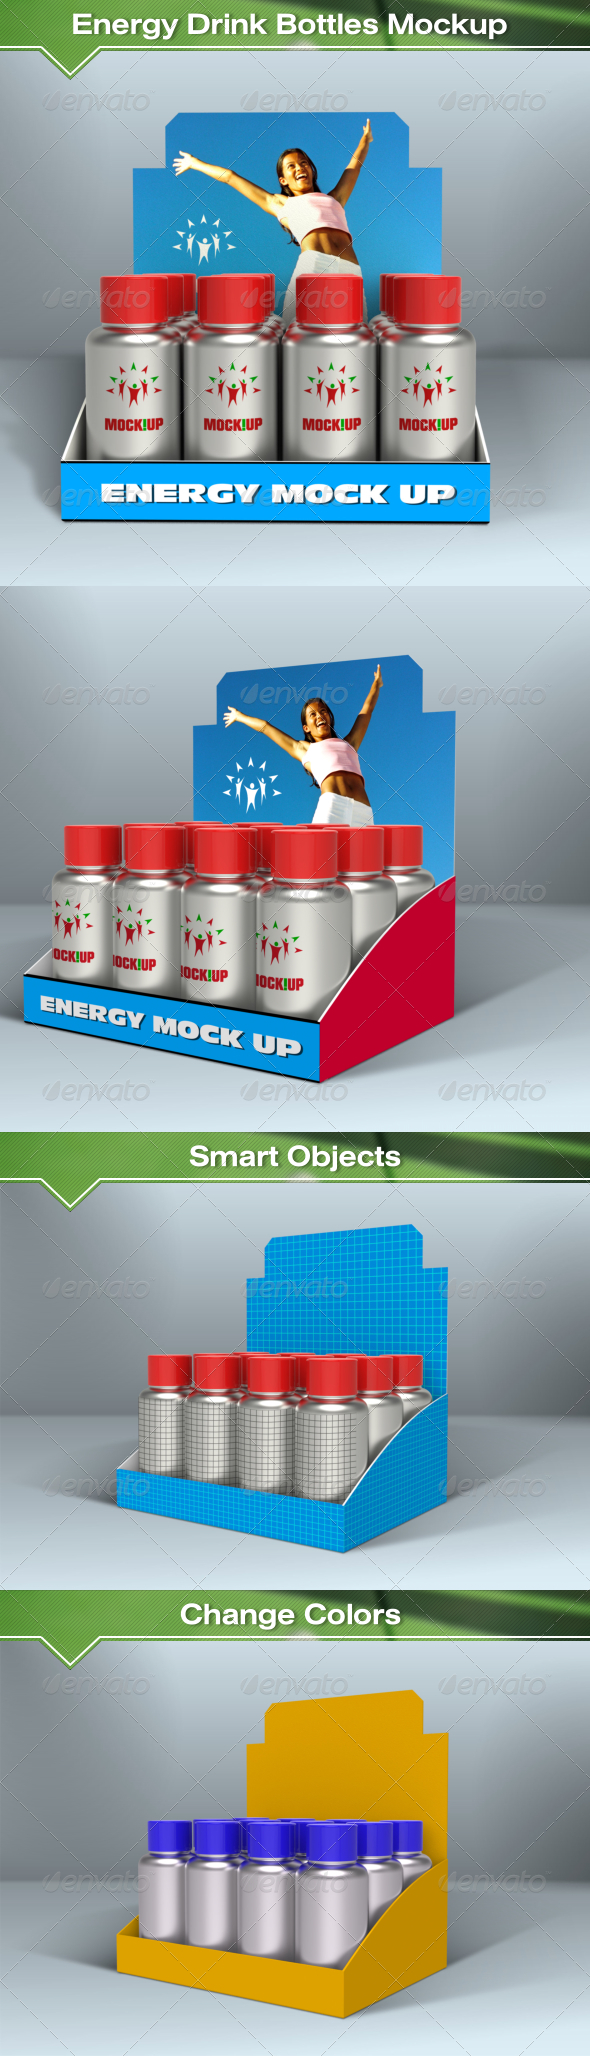 GraphicRiver Energy Drink Bottles Mockup 7993531